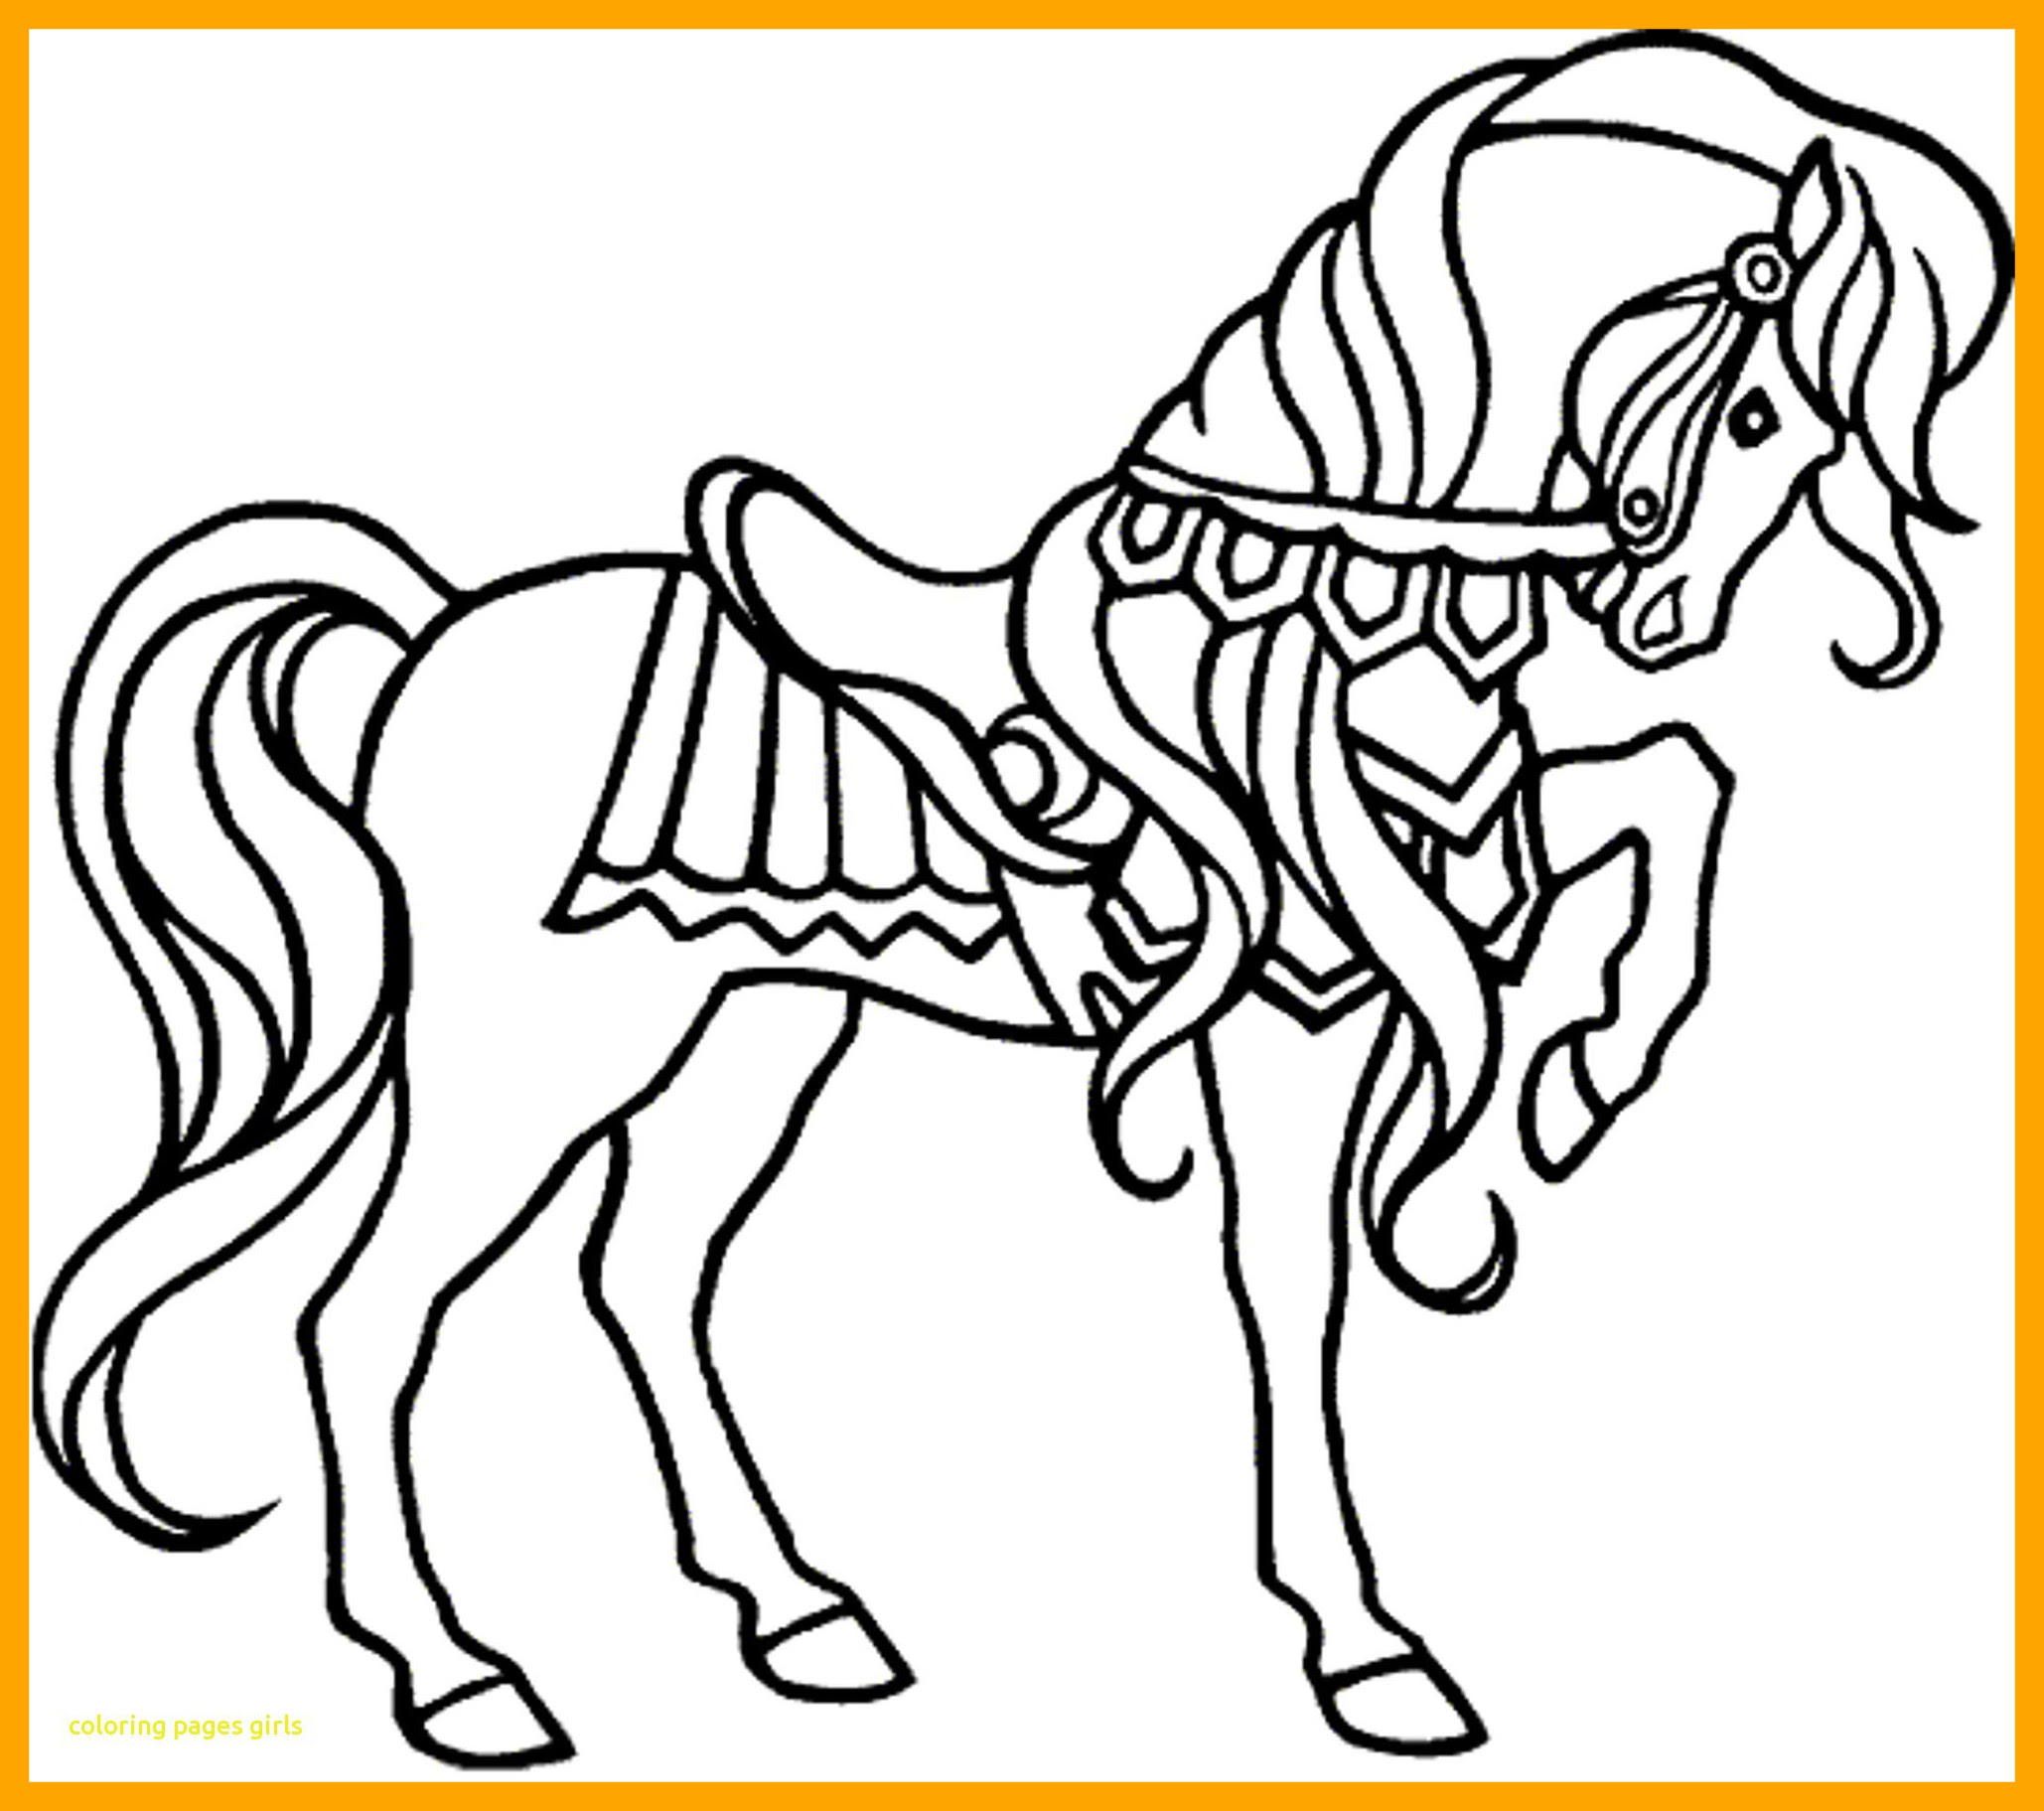 Horse Galloping Coloring Pages at GetColorings.com | Free ...